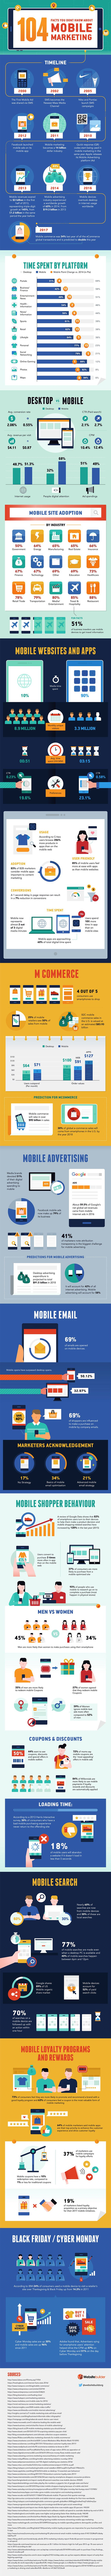 104 Facts About Mobile Marketing You Need to Know [Infographic]